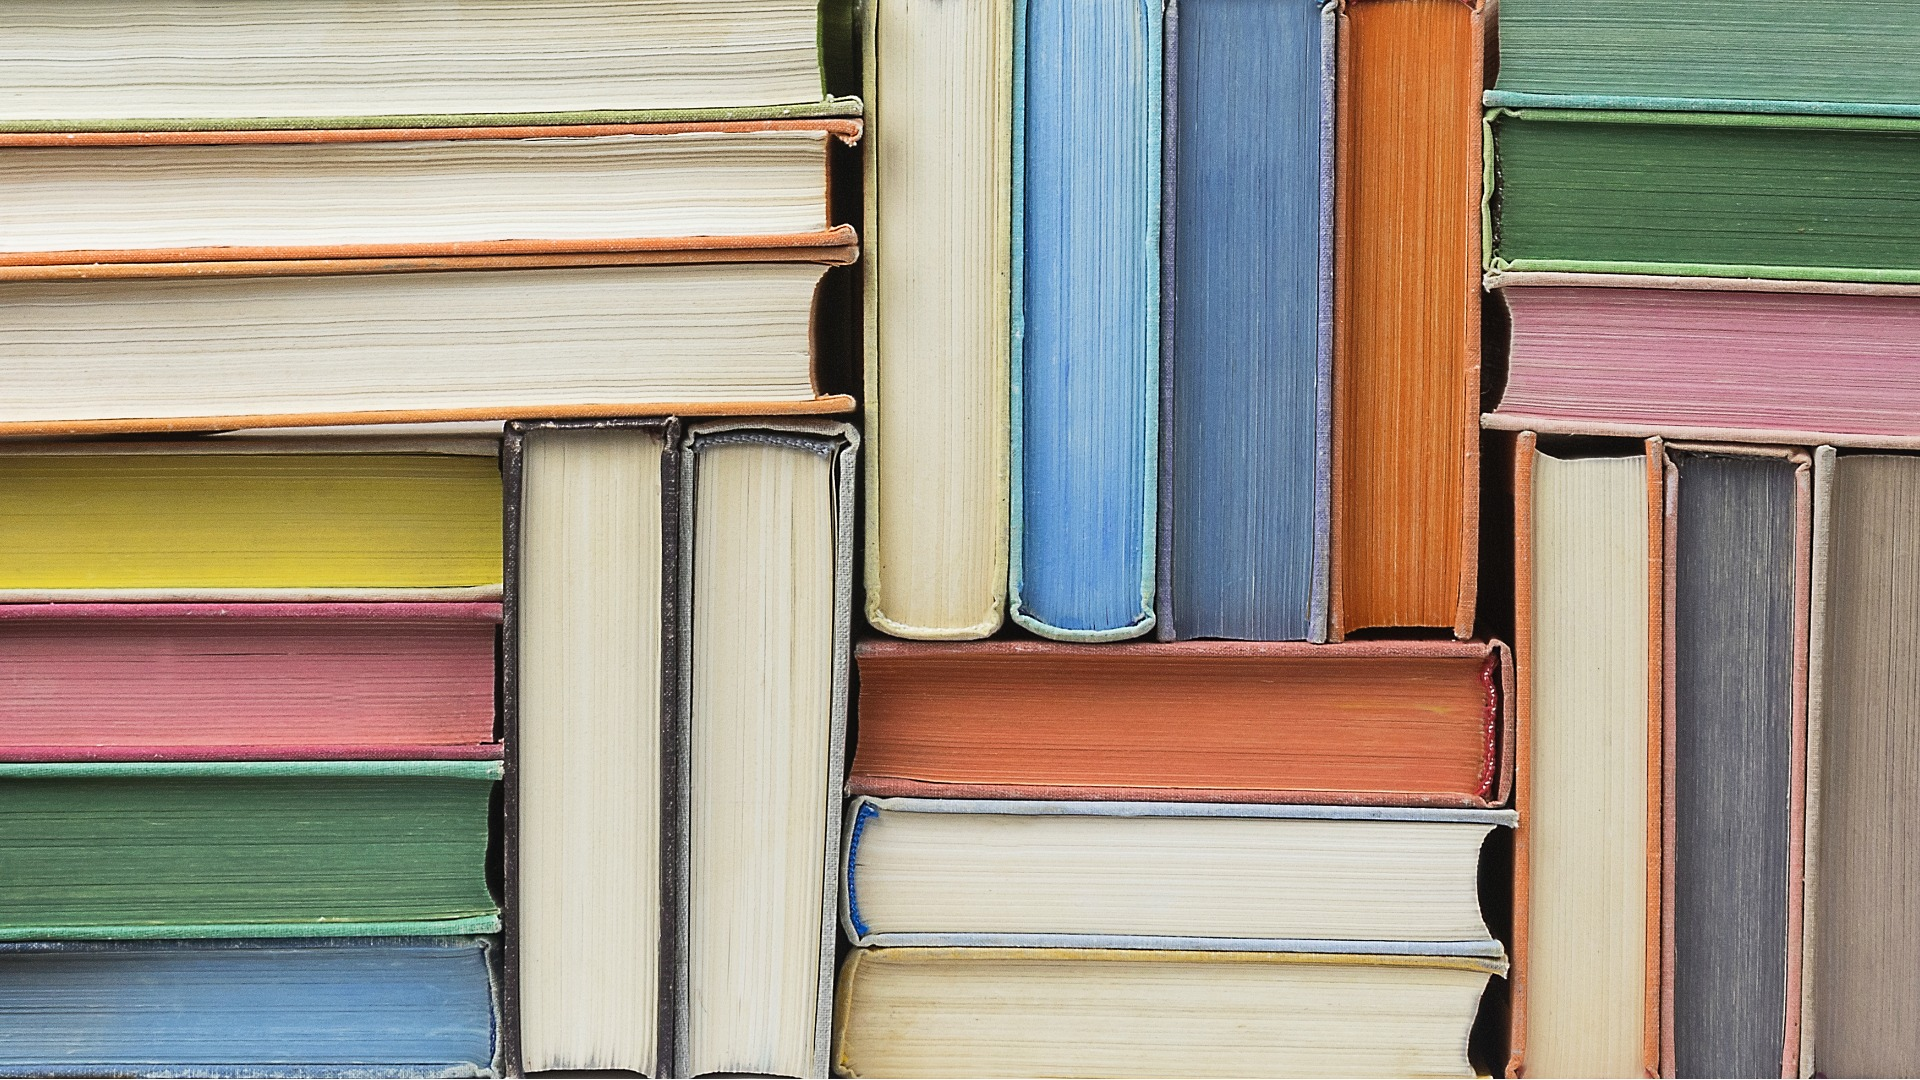 How to Disinfect Books: Keeping Readers Safe and Healthy